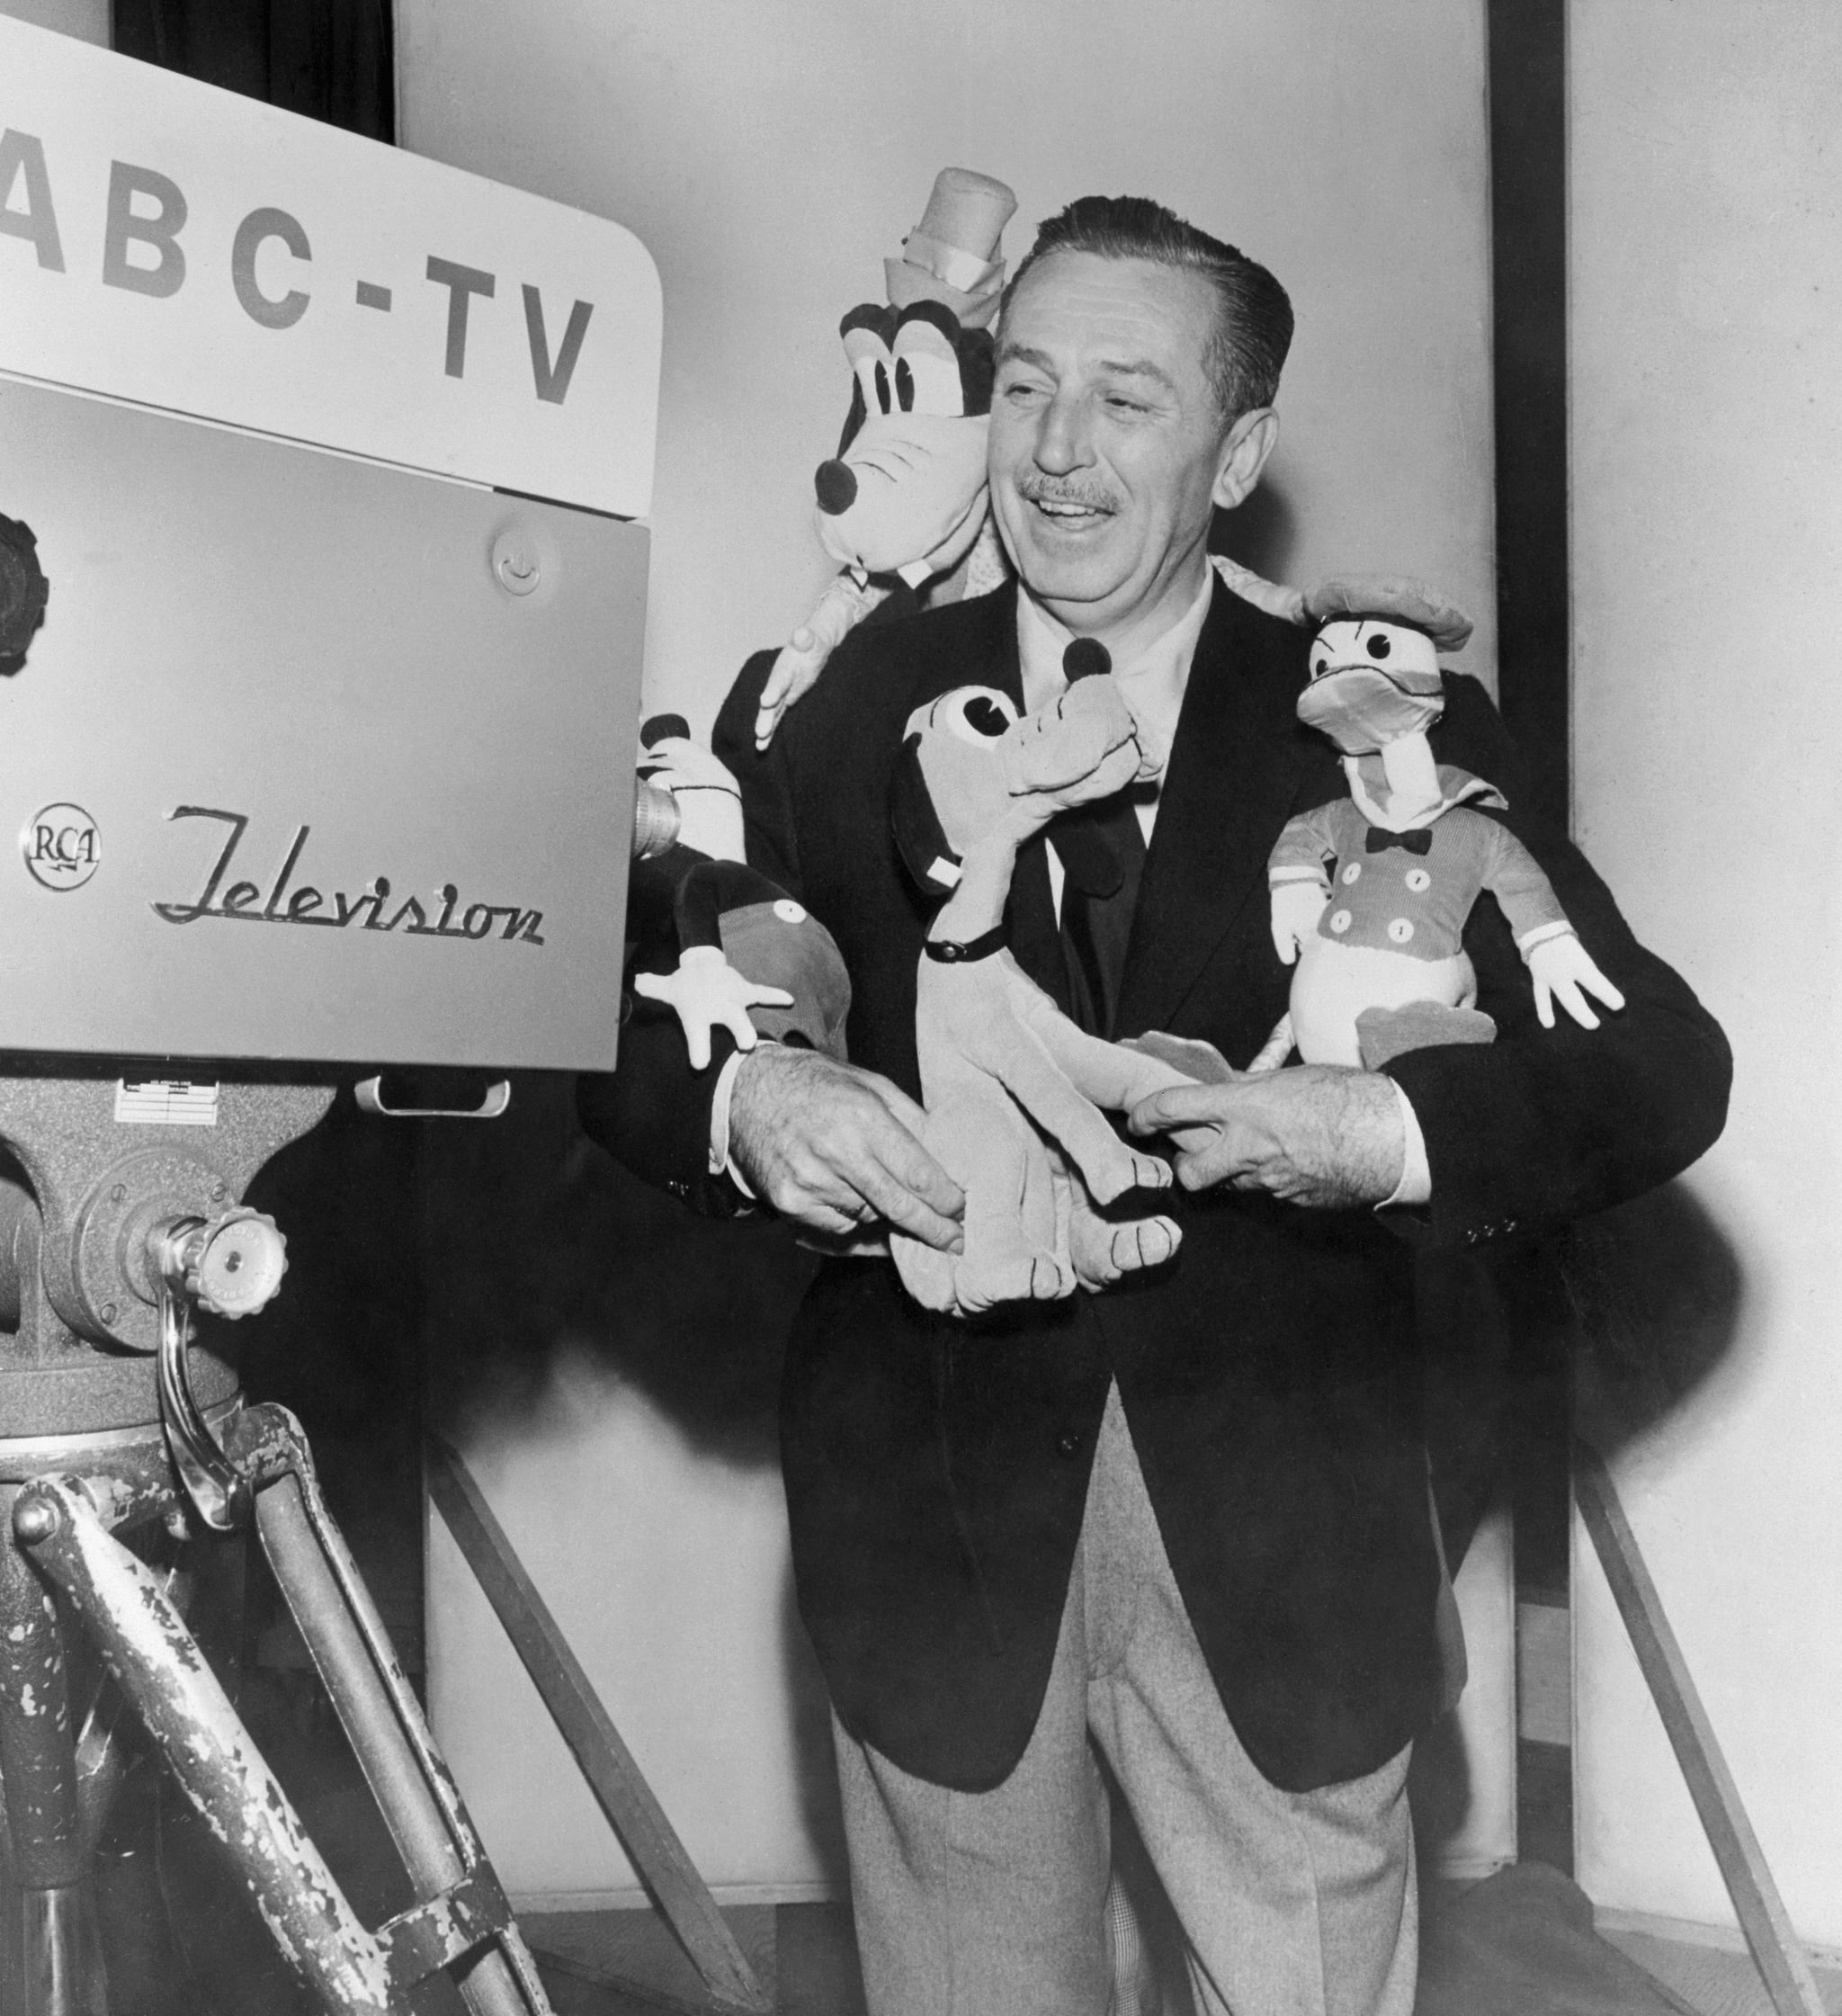 (Original Caption) After more than a year of study and exploration of the television field, Walt Disney today signed an exclusive long term agreement with the American Broadcasting Company calling for the Walt Disney Studios to annually produce a minimum of 26 hour long TV programs.